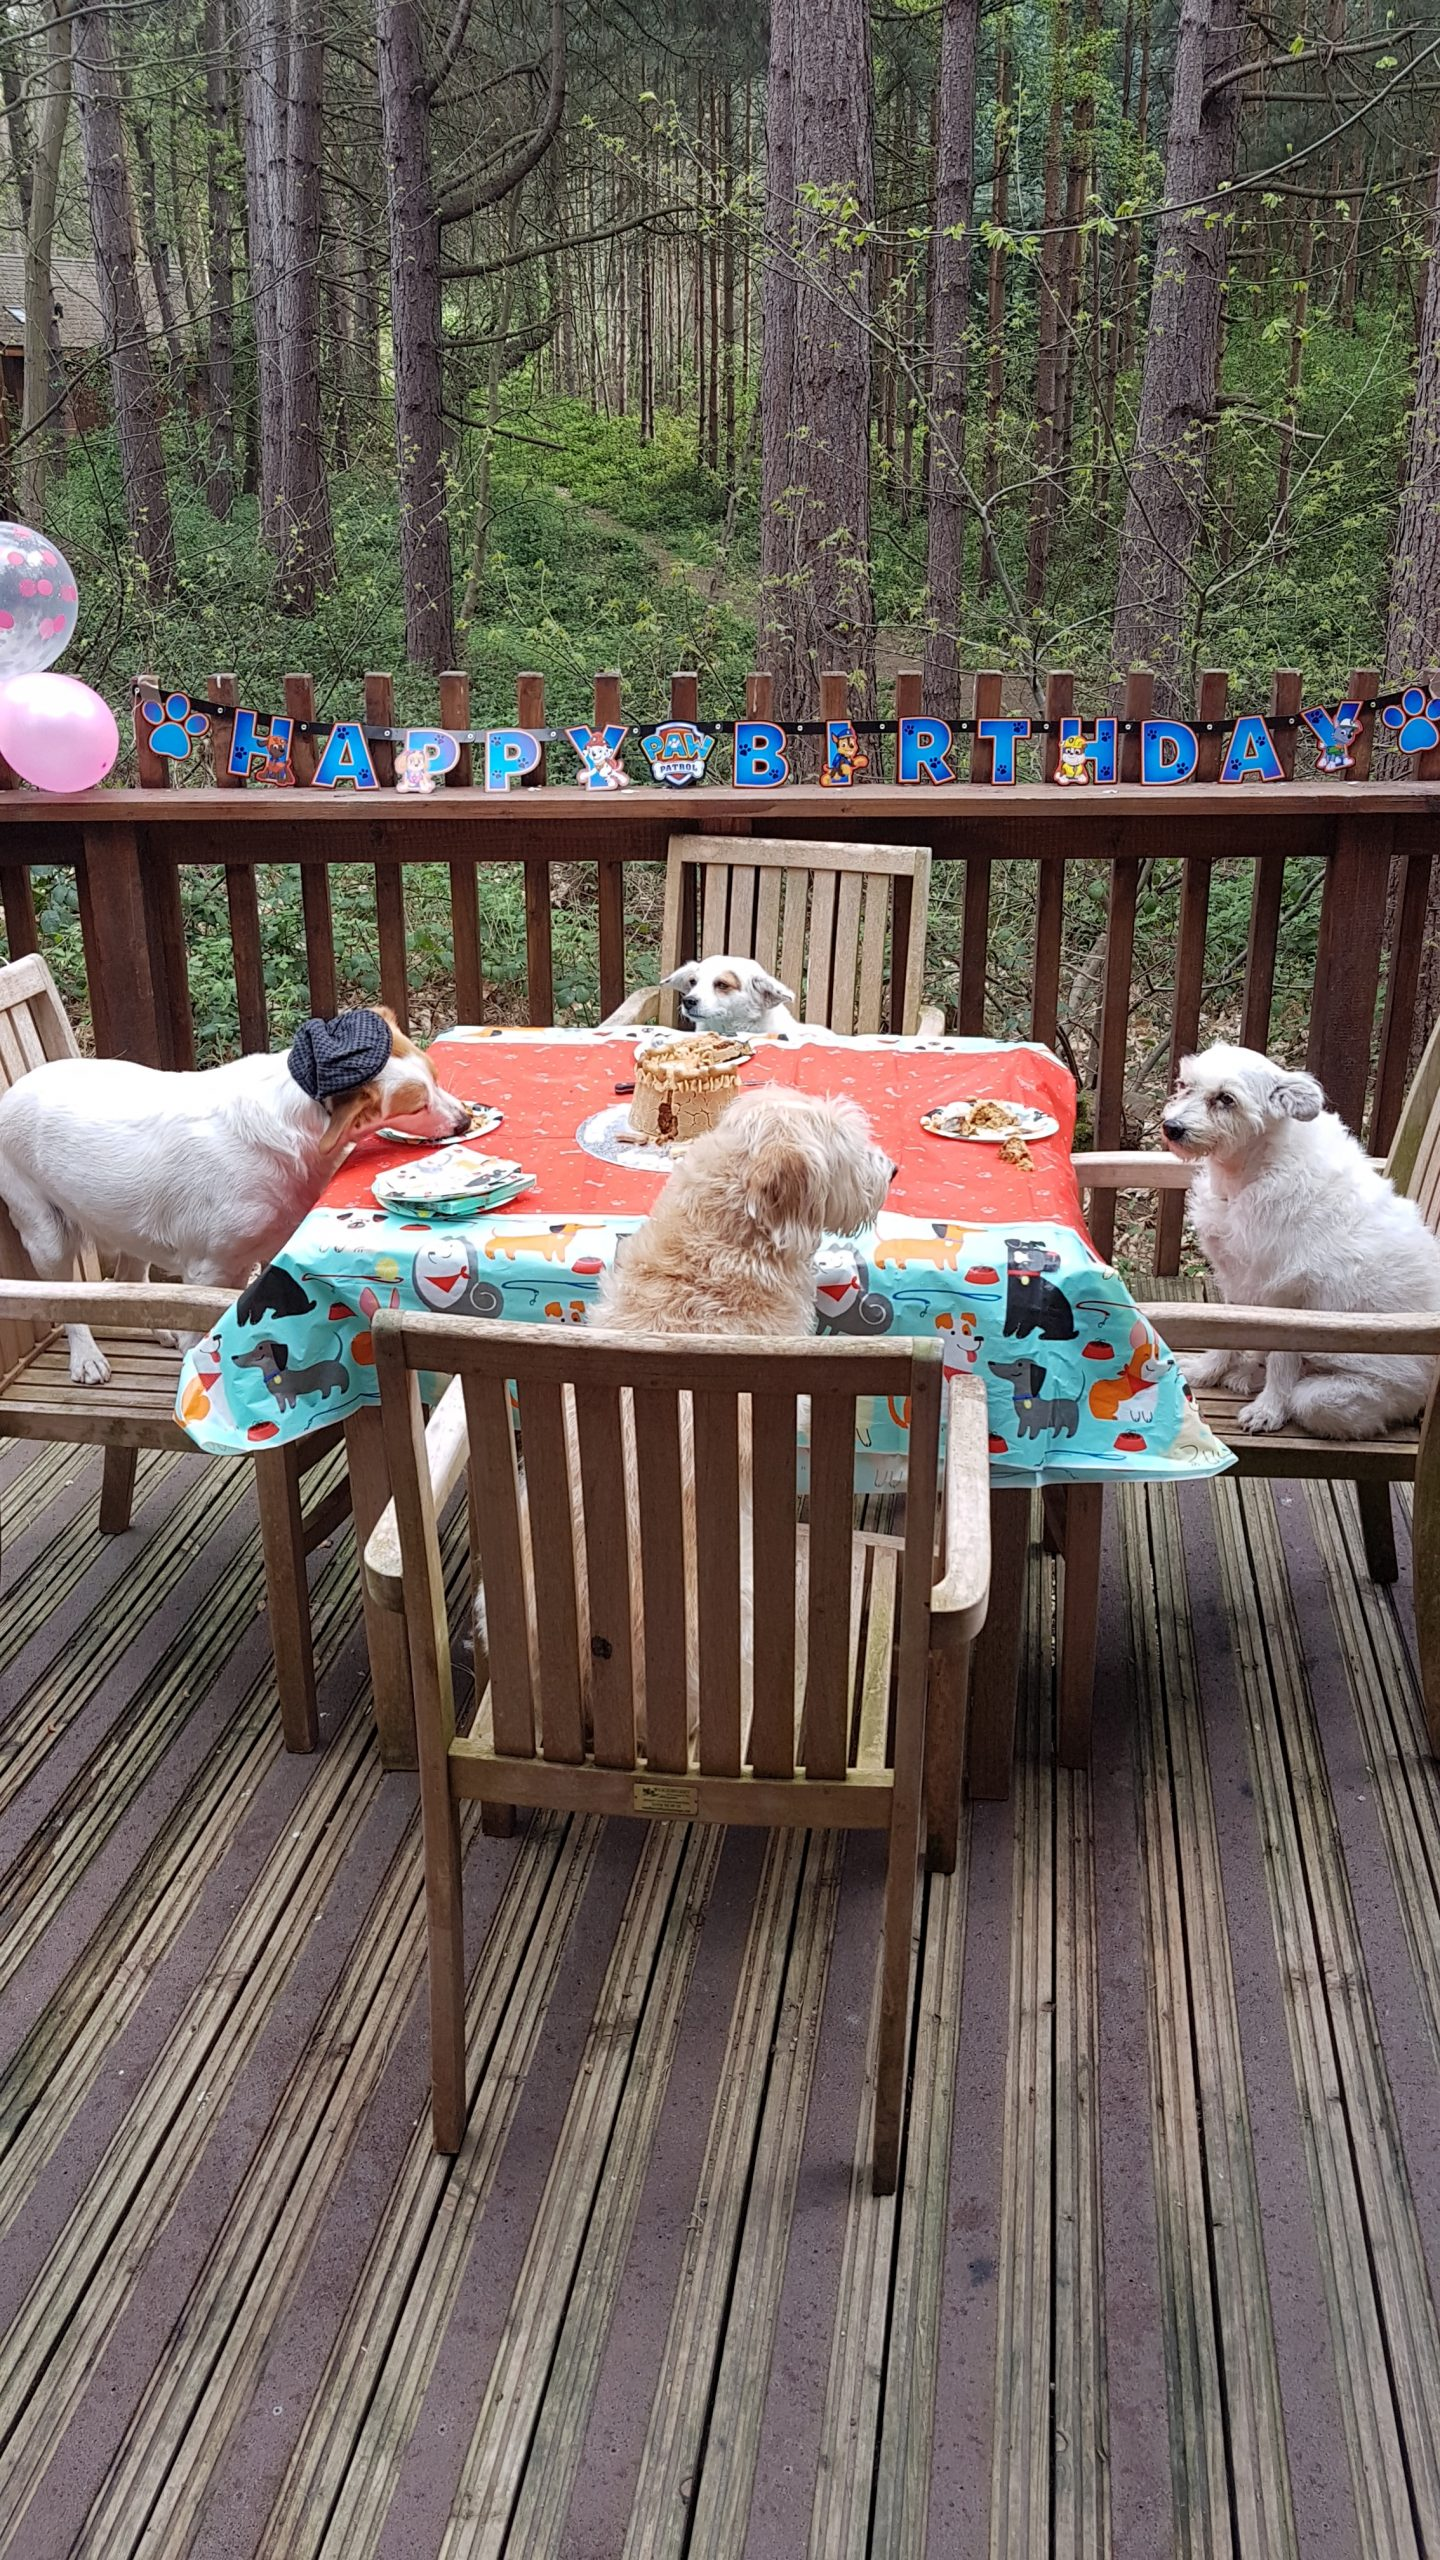 Party celebrating birthdays for dogs